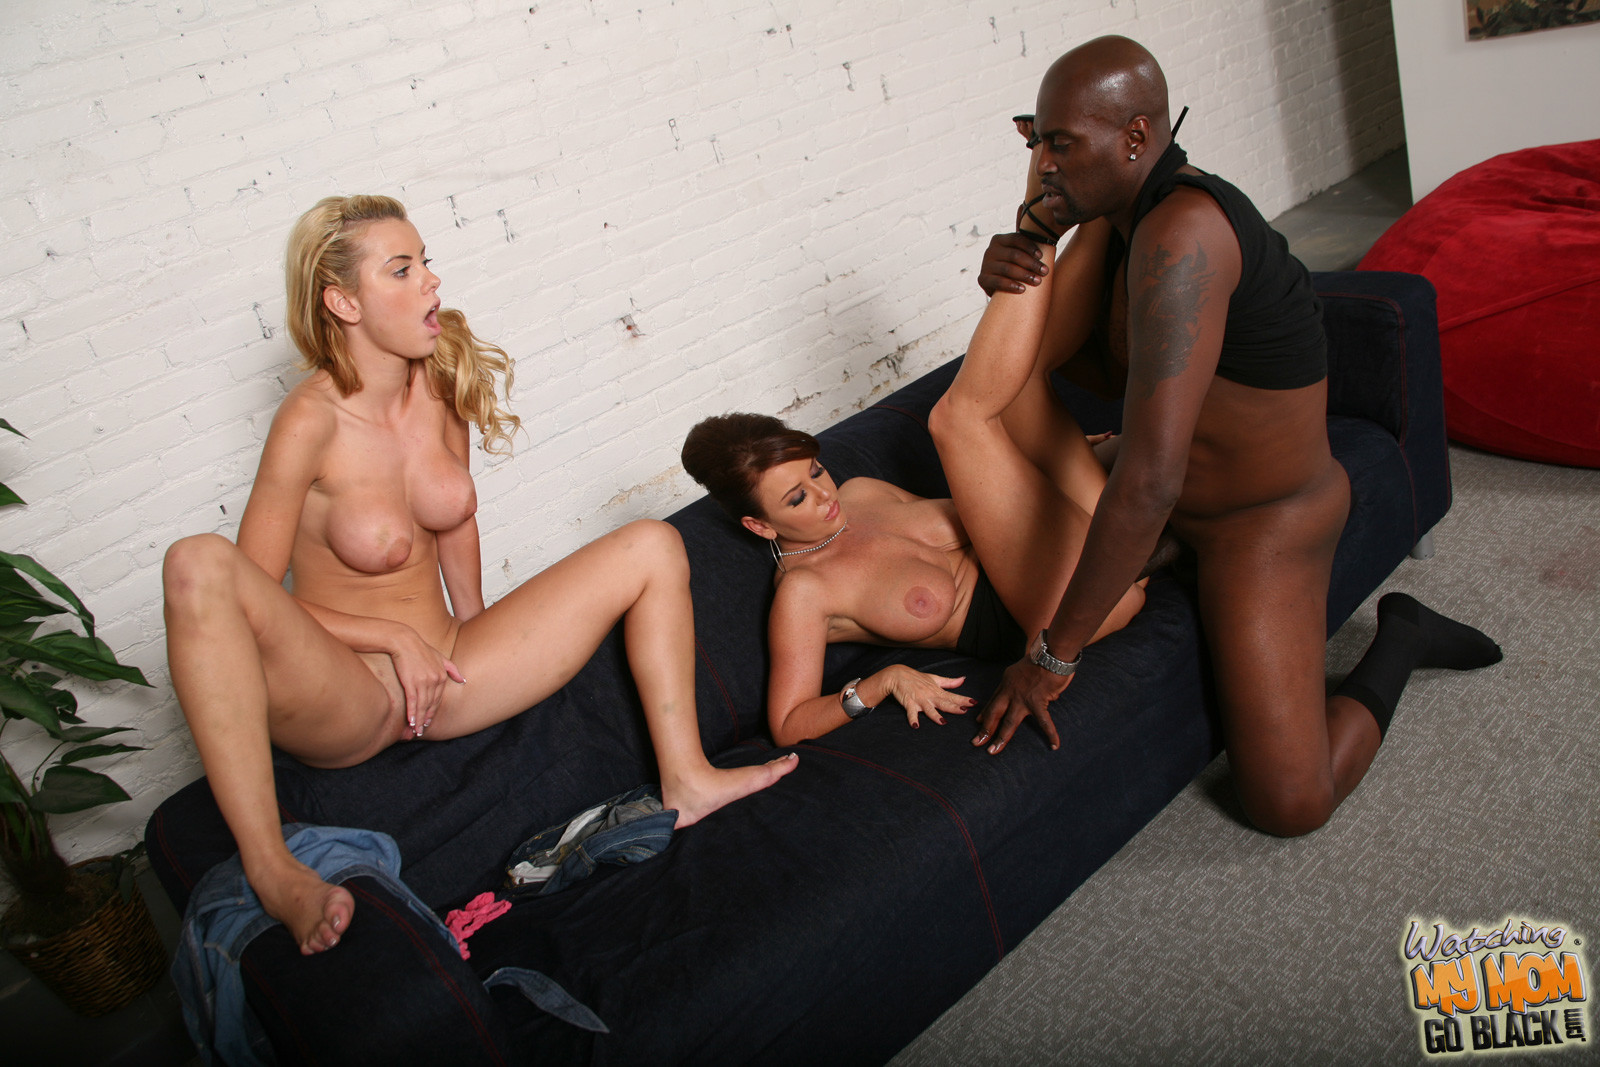 Privatesociety heidi goes black free porn galery